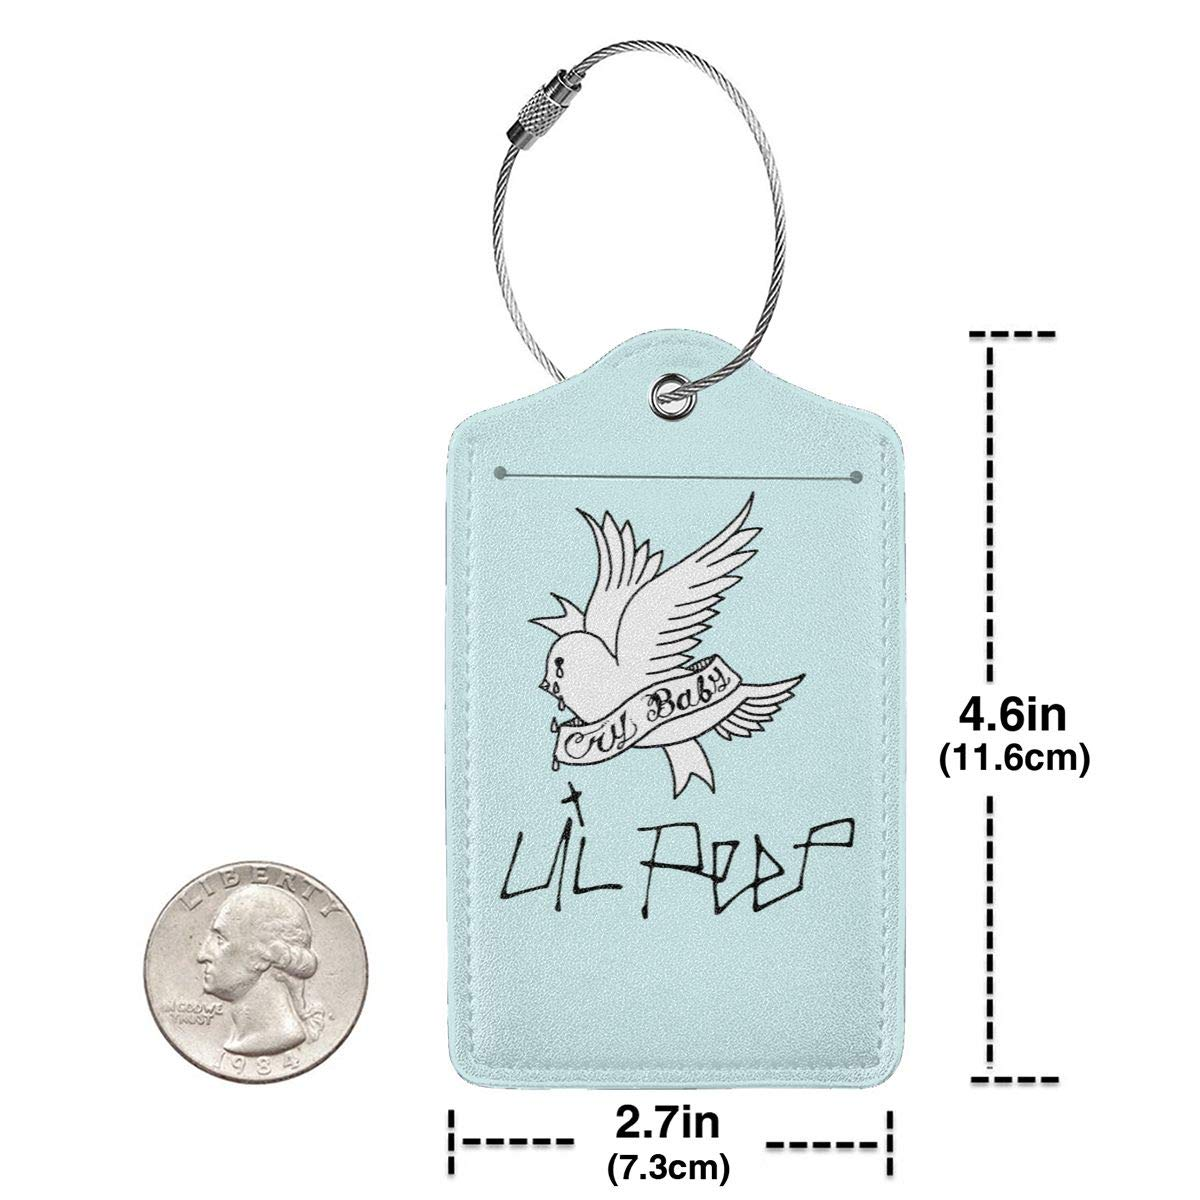 Lil Peep Letter Printed Leather Luggage Tag Travel ID Label For Baggage Suitcase